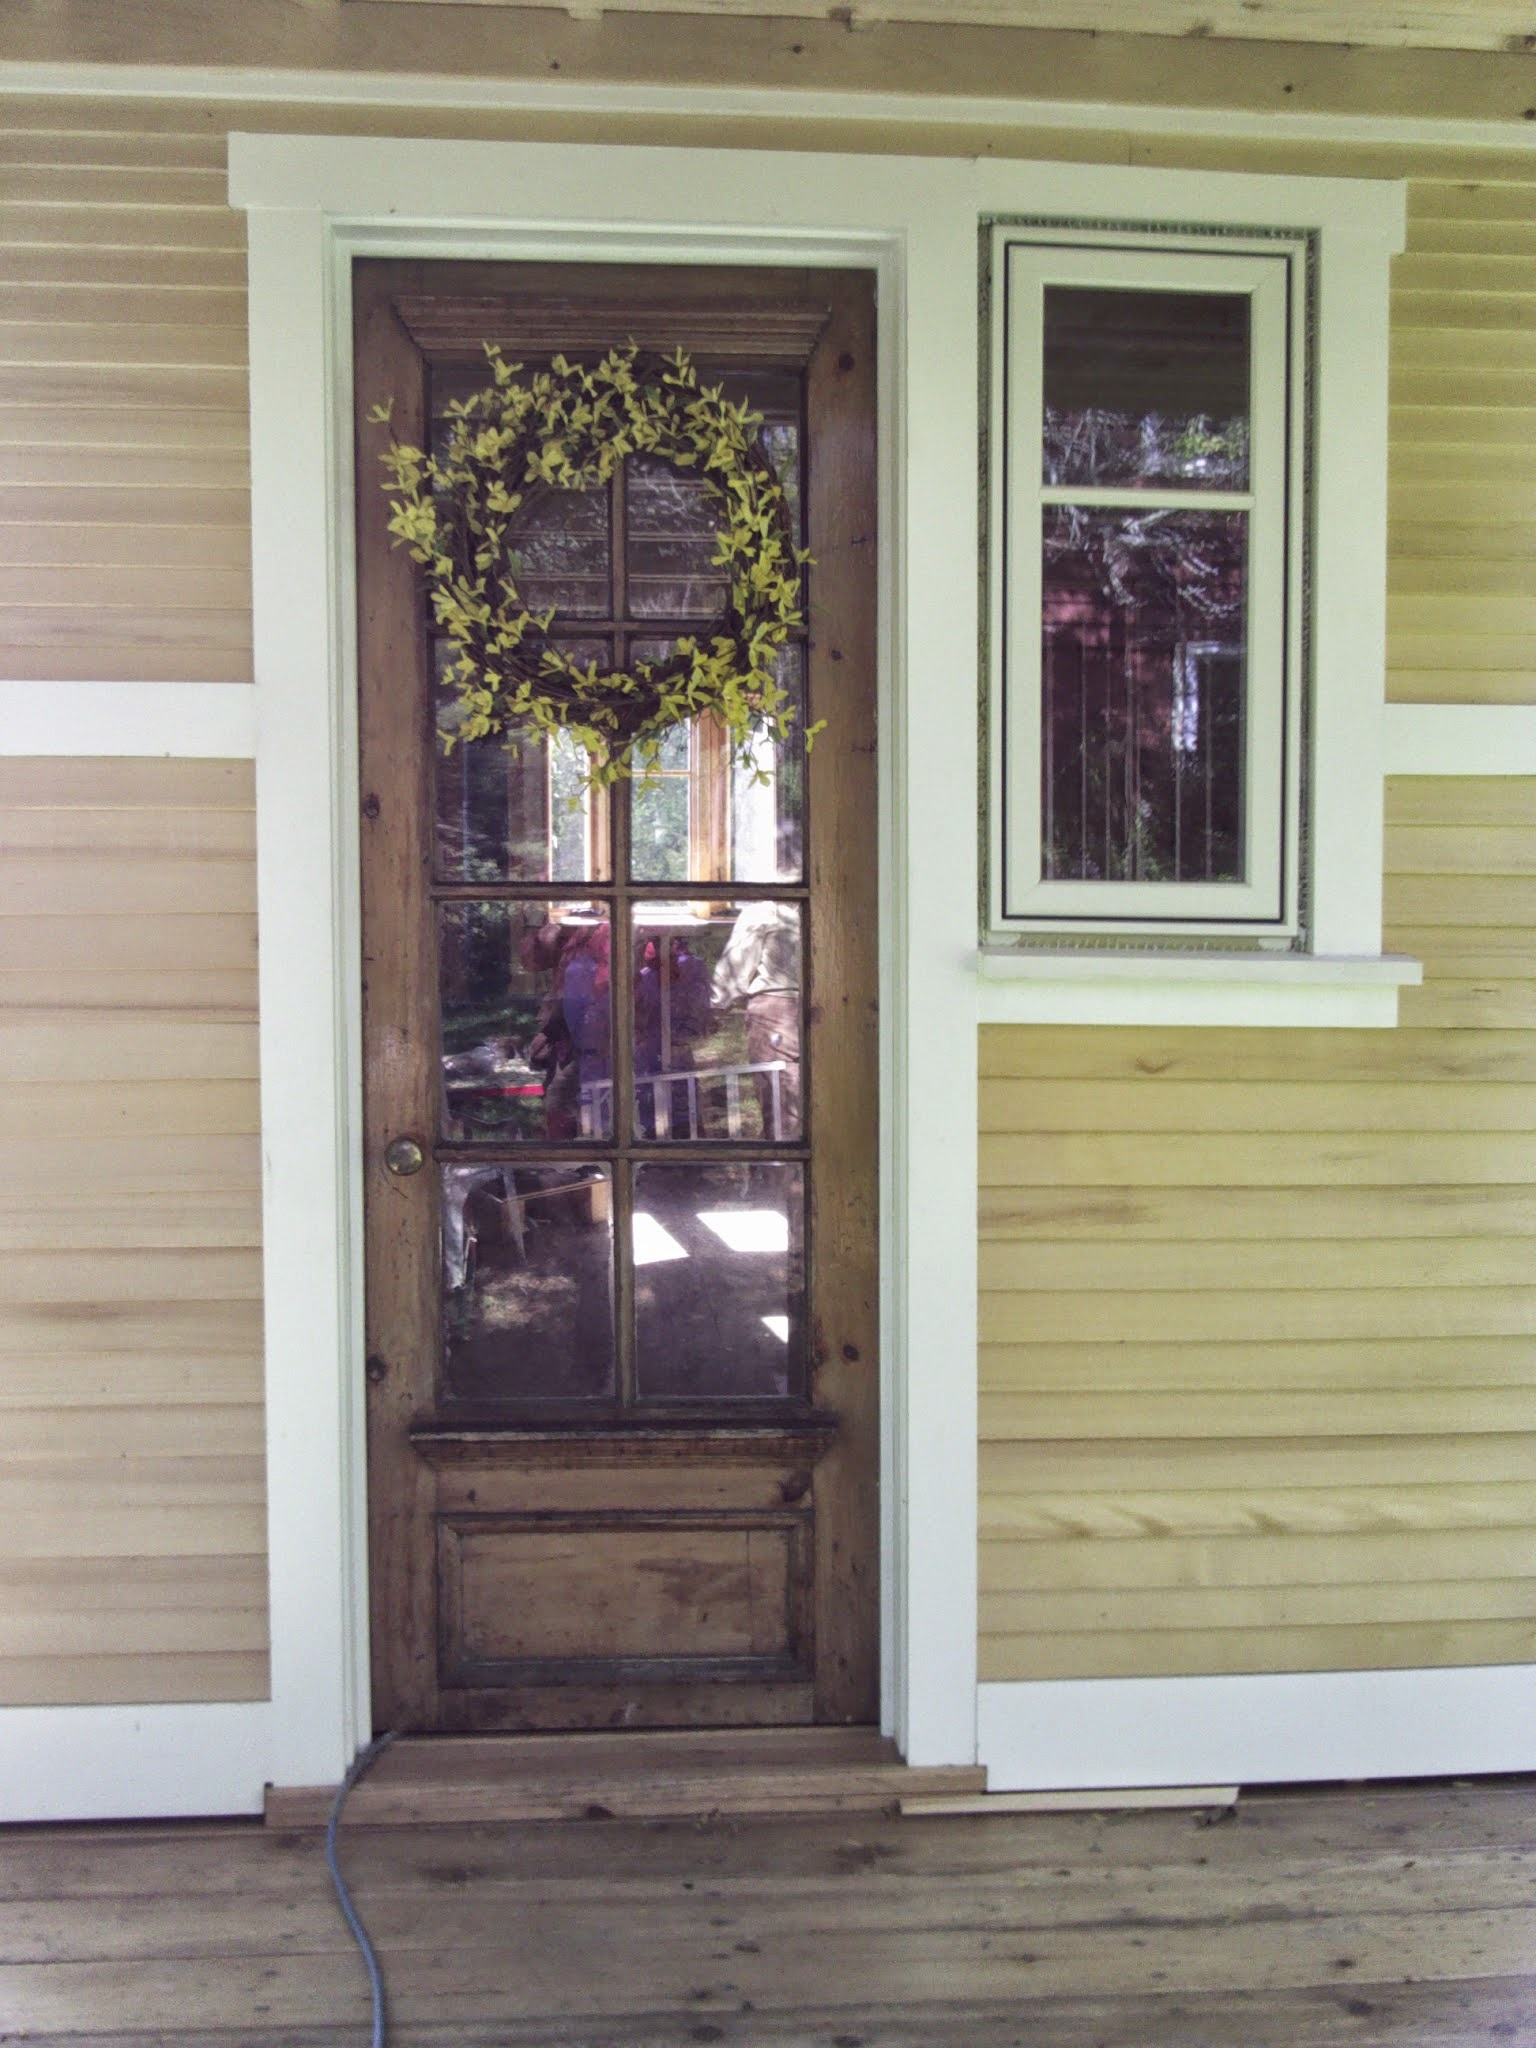 This antique door was found salvaged and cut down to size. Many people need to cut down the door for their home, so buying a used, salvaged, cheap door is a good idea since you're going to be modifying it anyway.